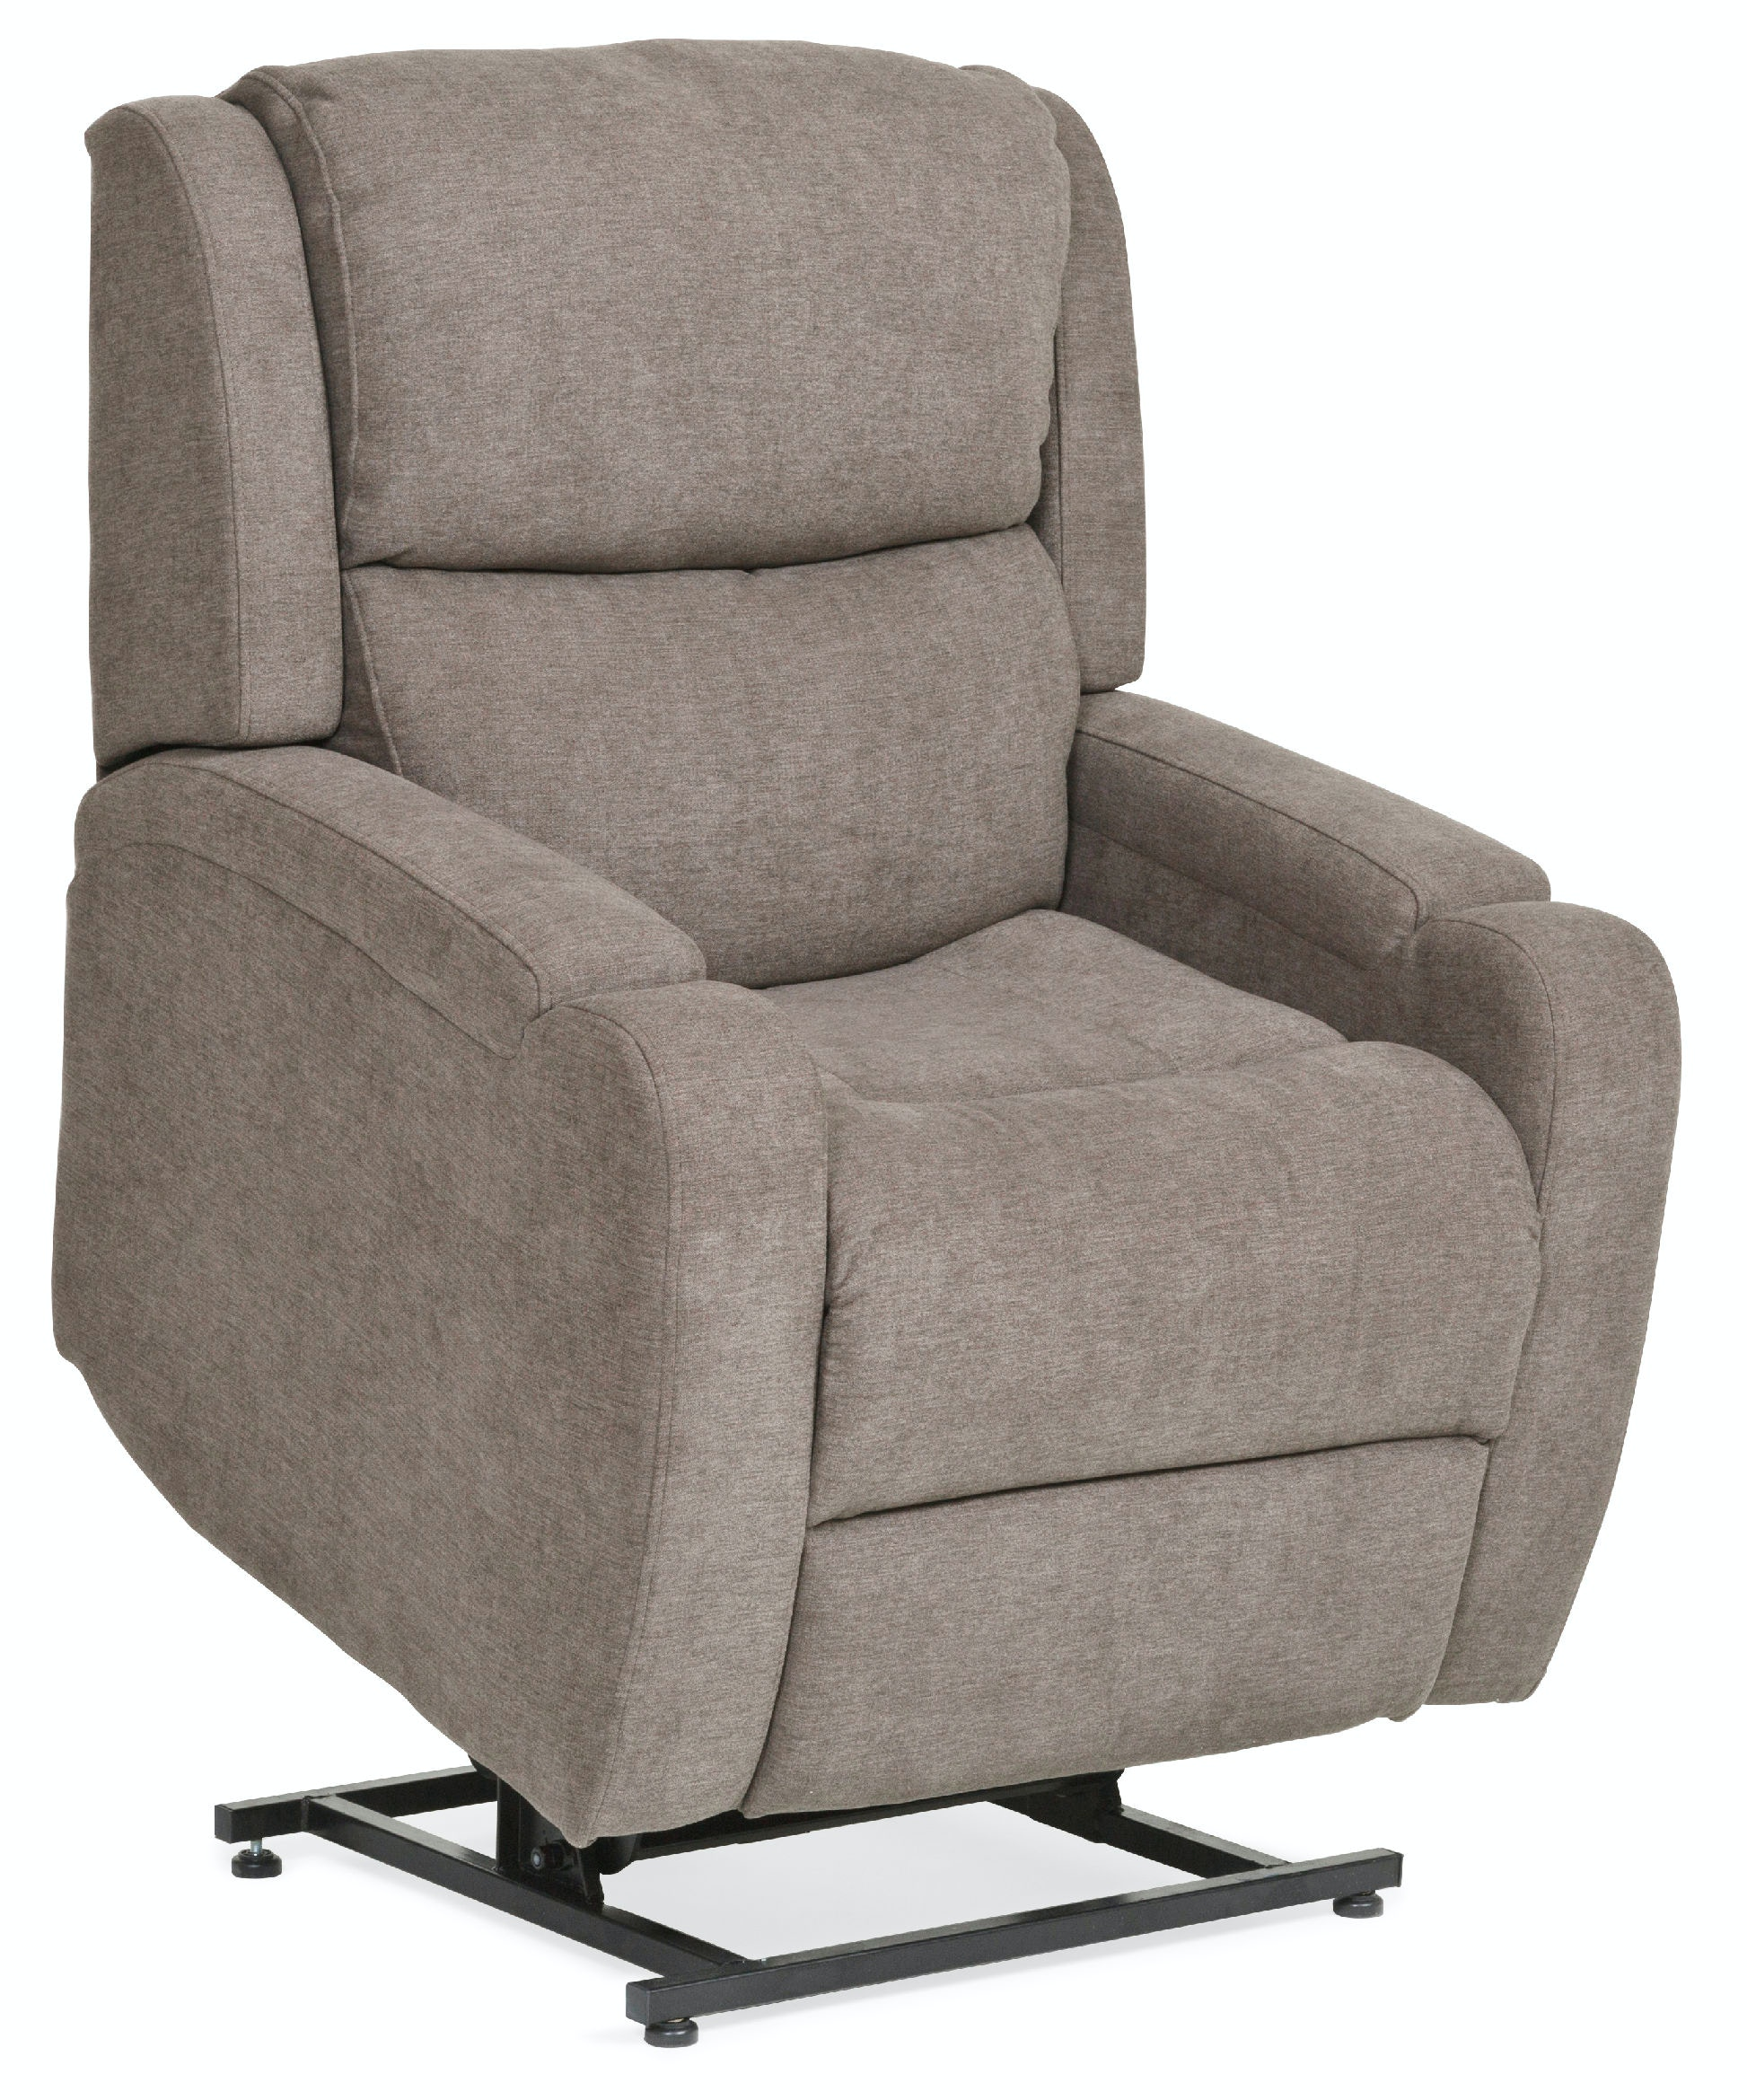 Melody Power Motion Lift Chair Recliner ST433489  sc 1 st  Star Furniture & Living Room Melody Power Motion Lift Chair Recliner islam-shia.org